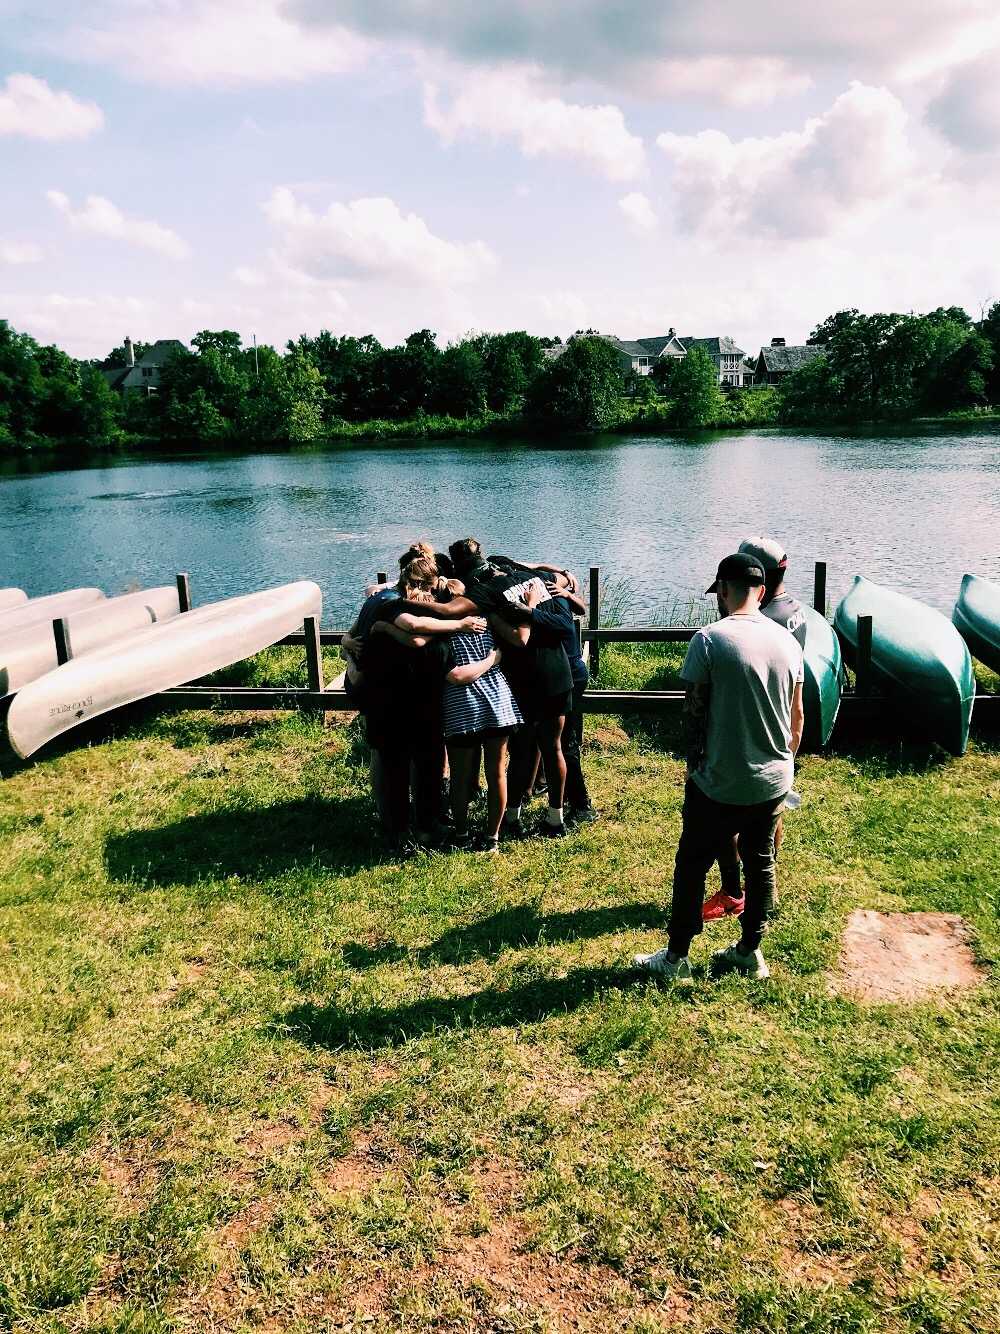 DURING ATHLETICS, TEAMS WERE CHALLENGED EMOTIONALLY, SPIRITUALLY, AND PHYSICALLY TO LEAN ON THE LORD AND ONE ANOTHER DURING DIFFICULT SITUATIONS.